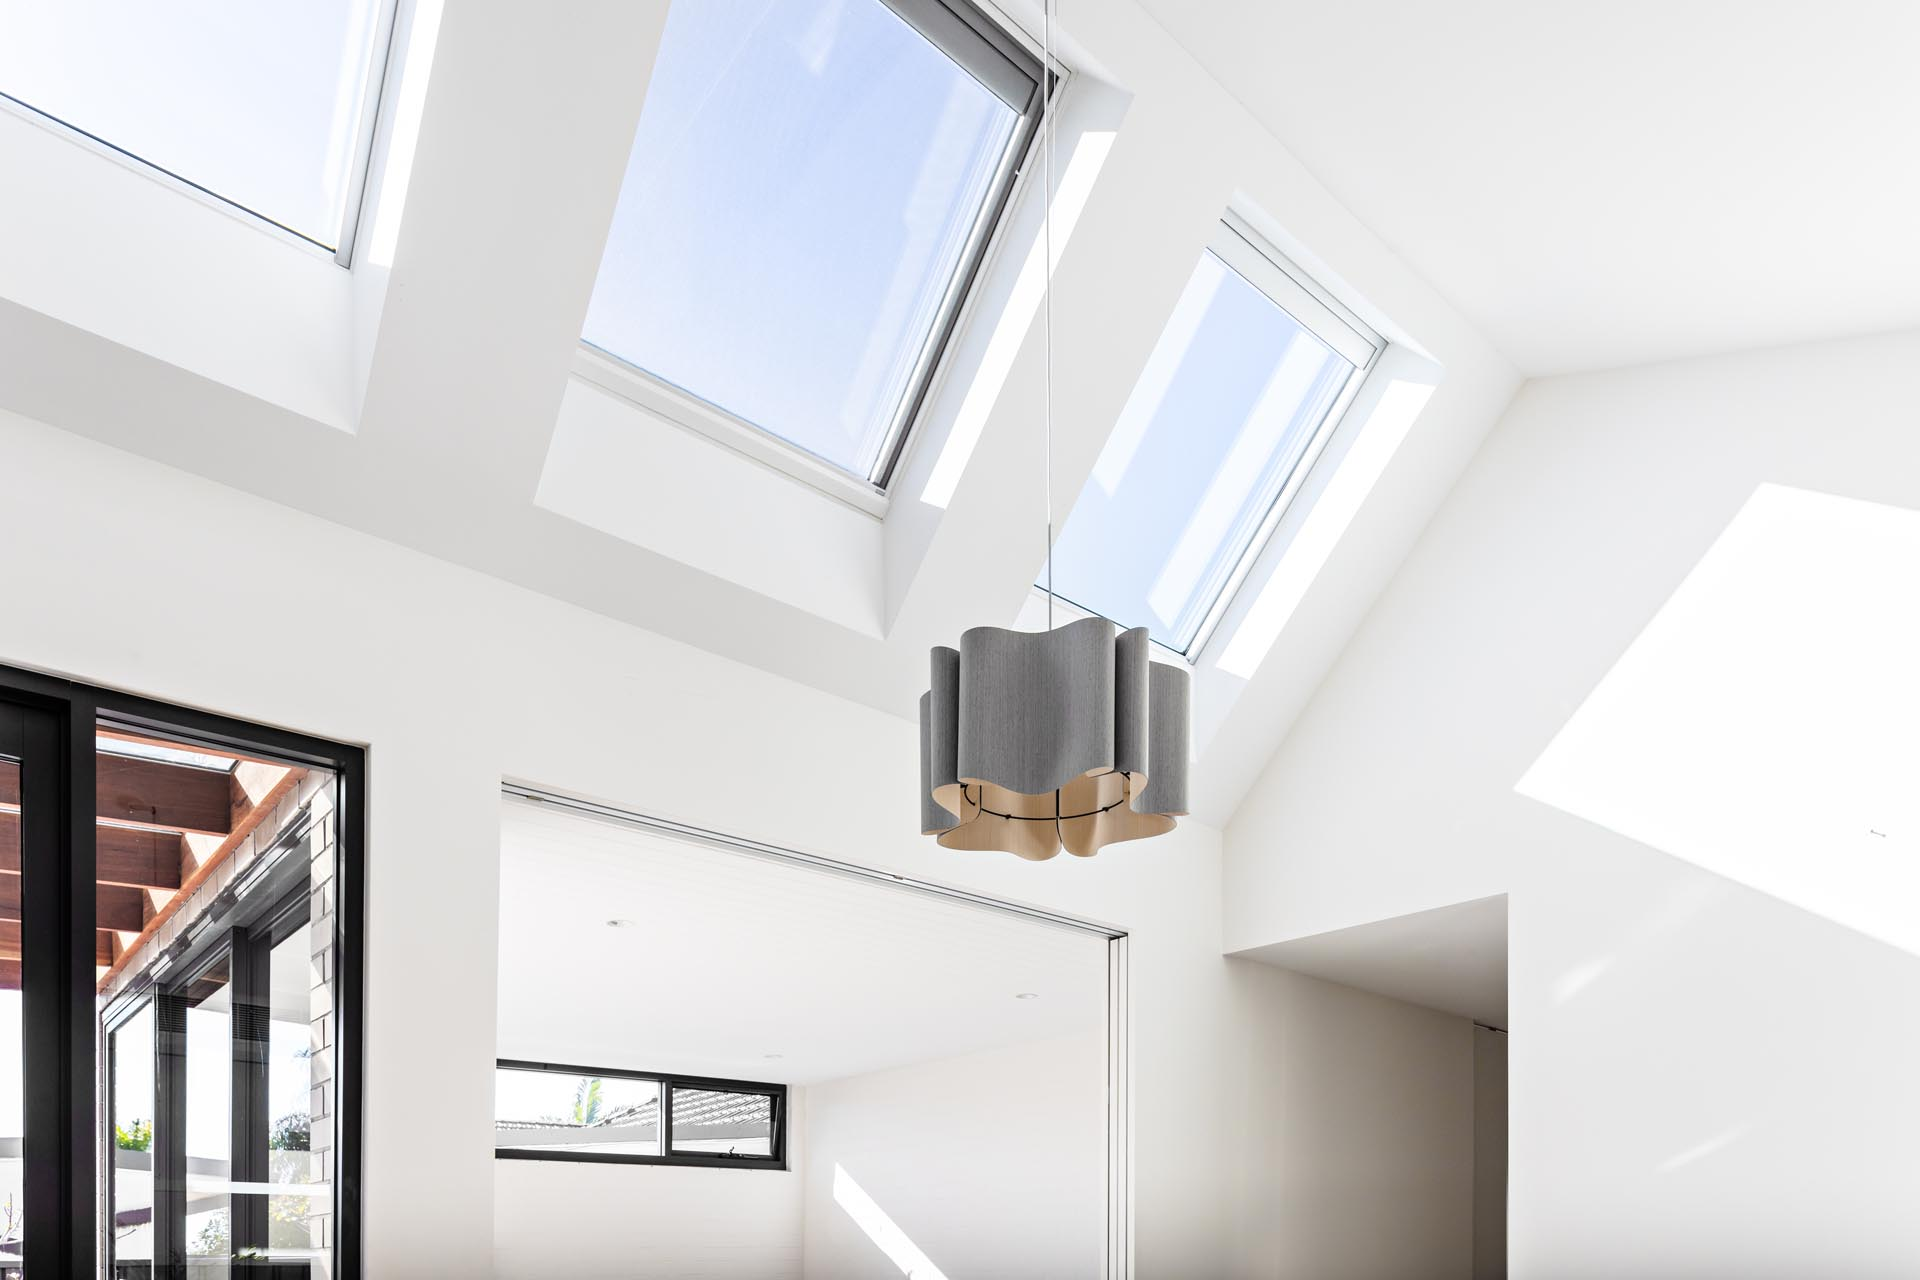 A series of large north orientated skylights flood the addition with daylight that illuminates the natural materials and textures.